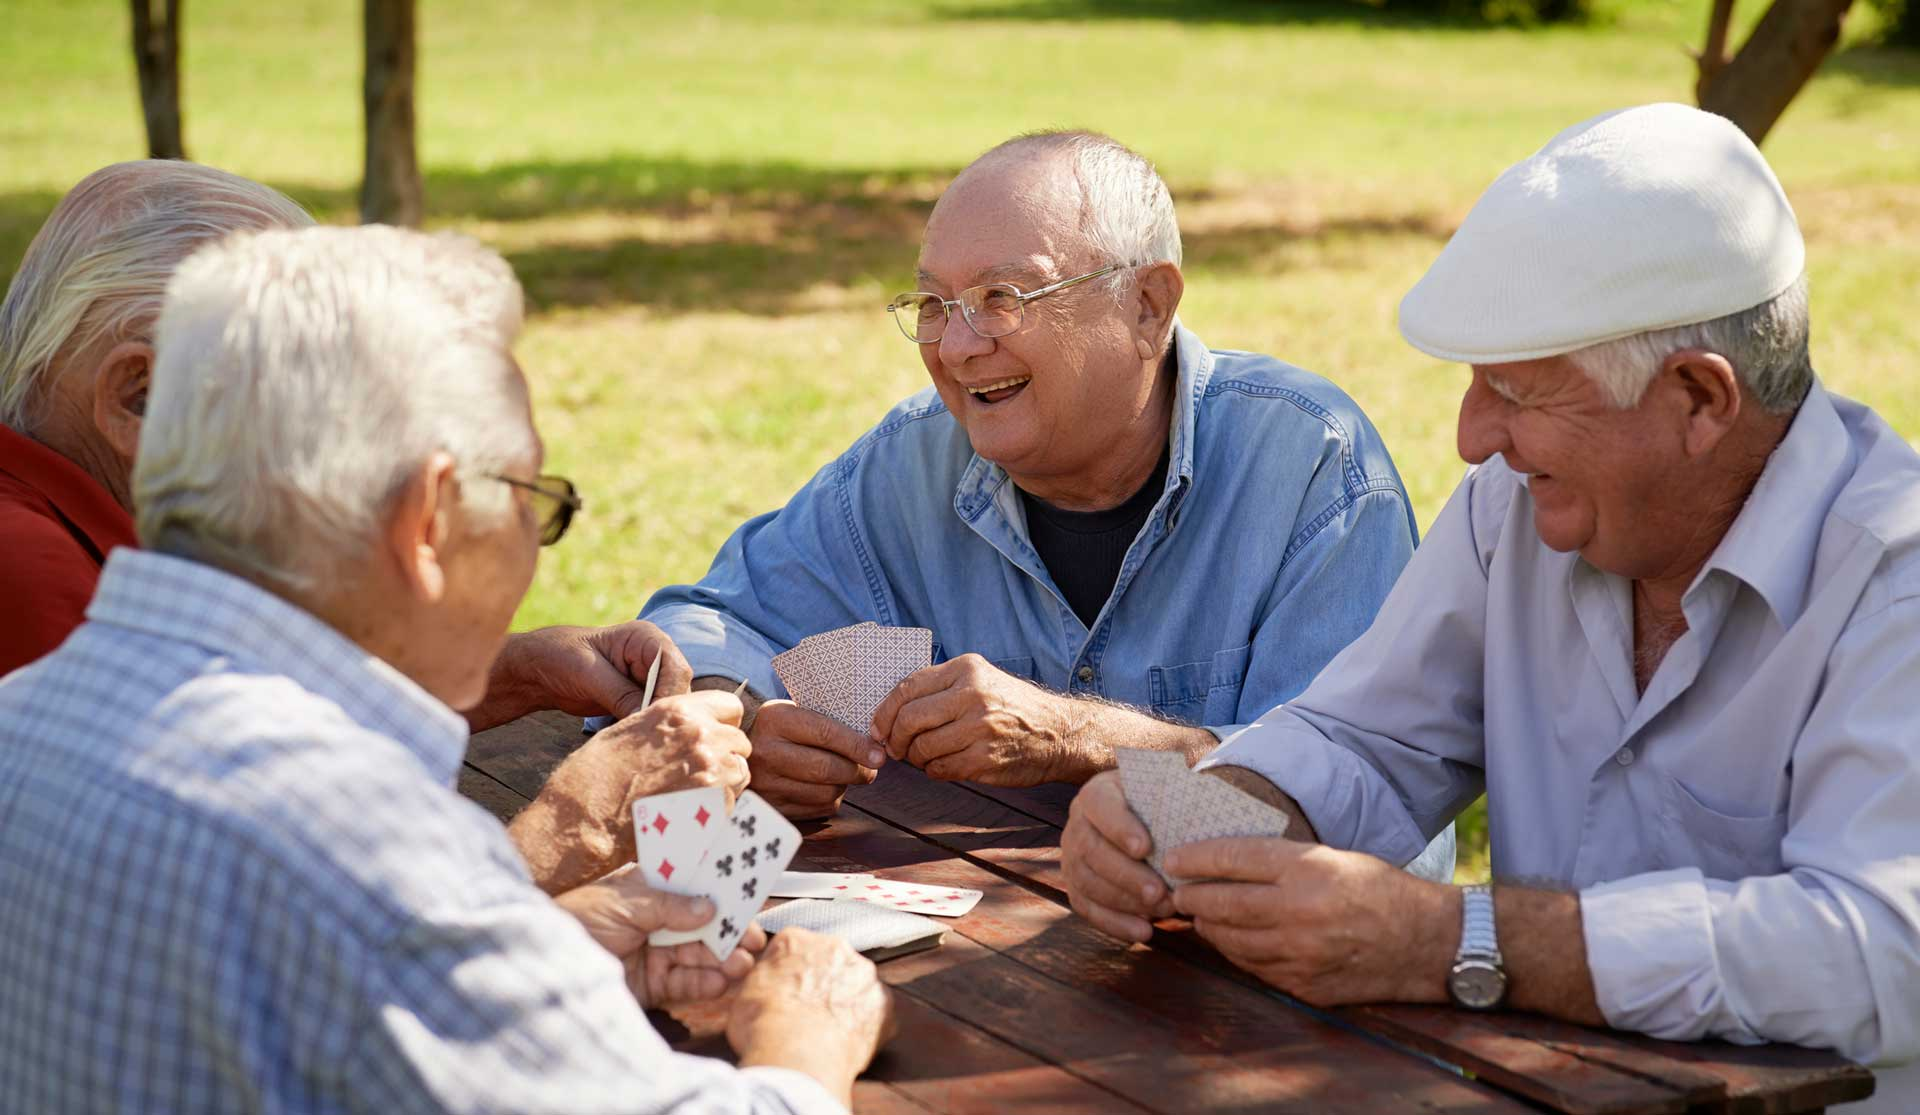 four elderly men playing cards and laughing